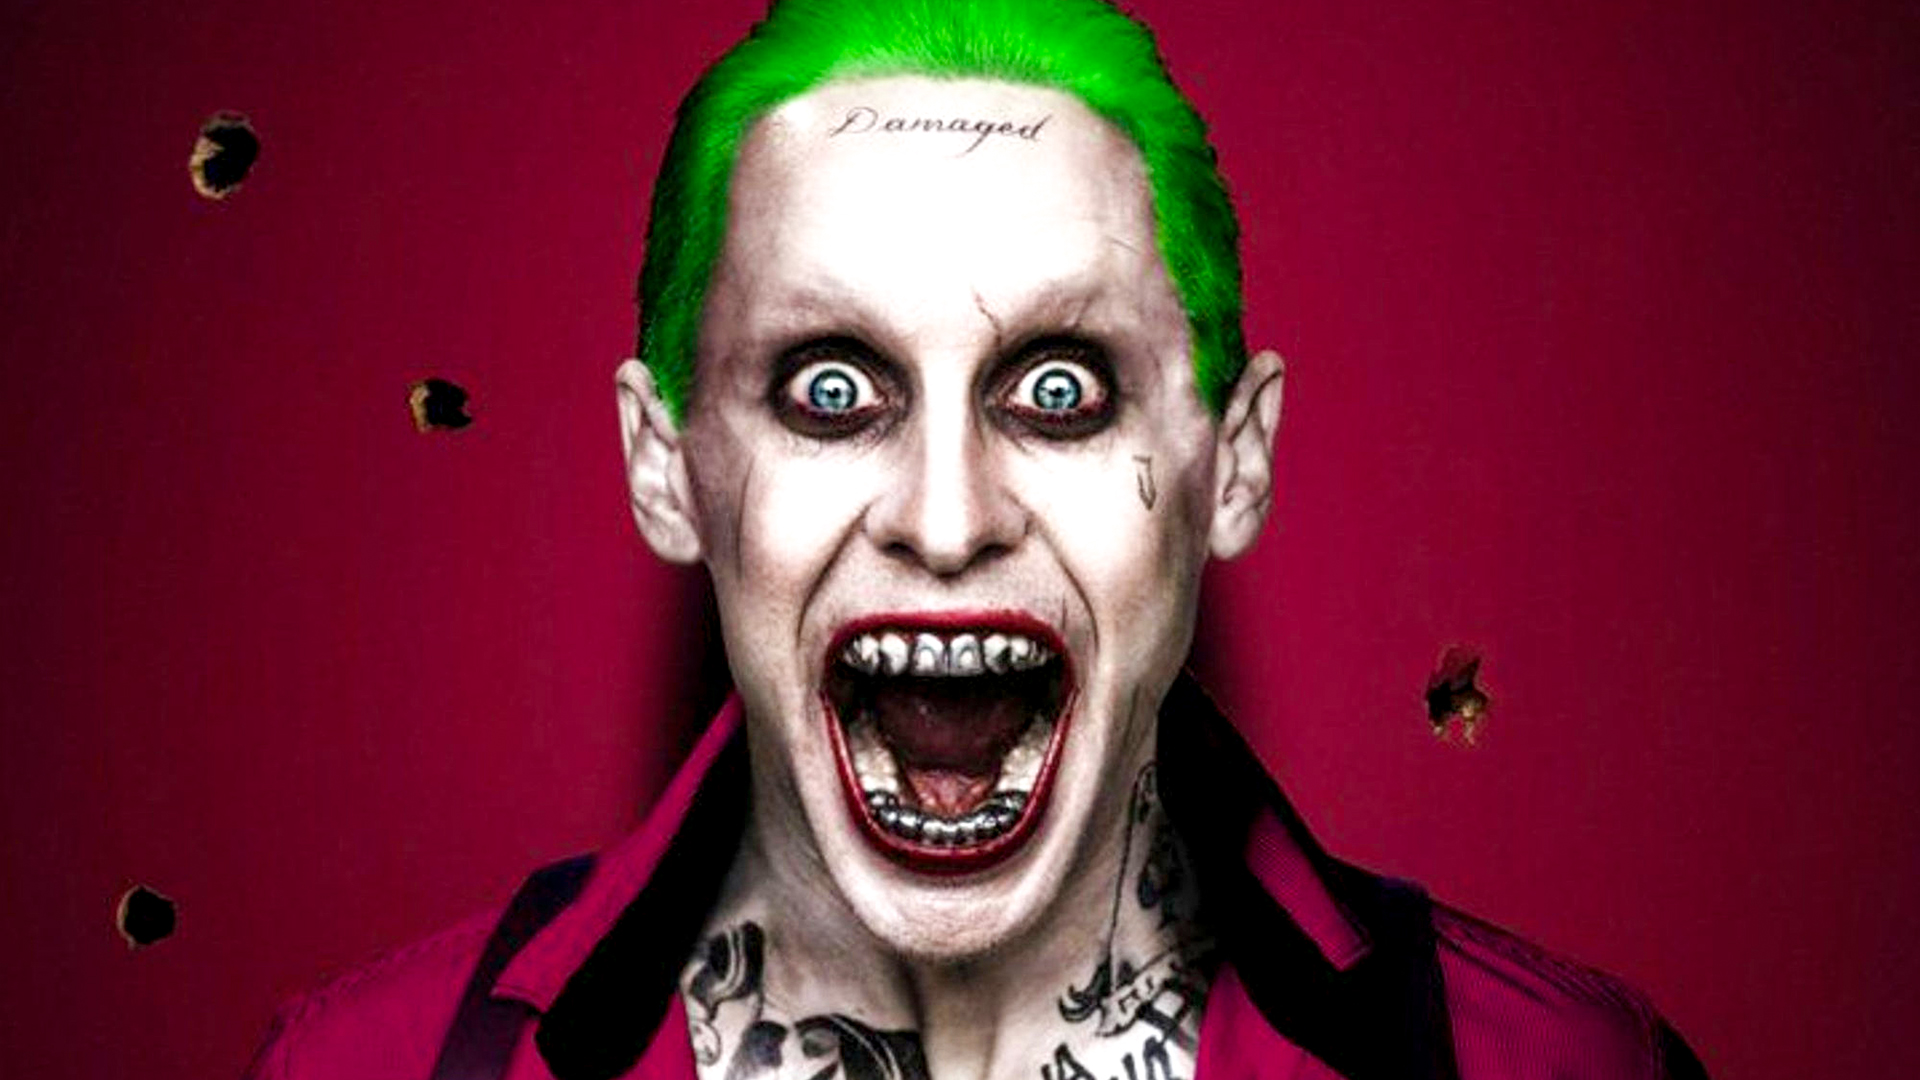 Jared Leto will play Jared Leto dressed as the Joker in another movie because creativity is dead screenshot